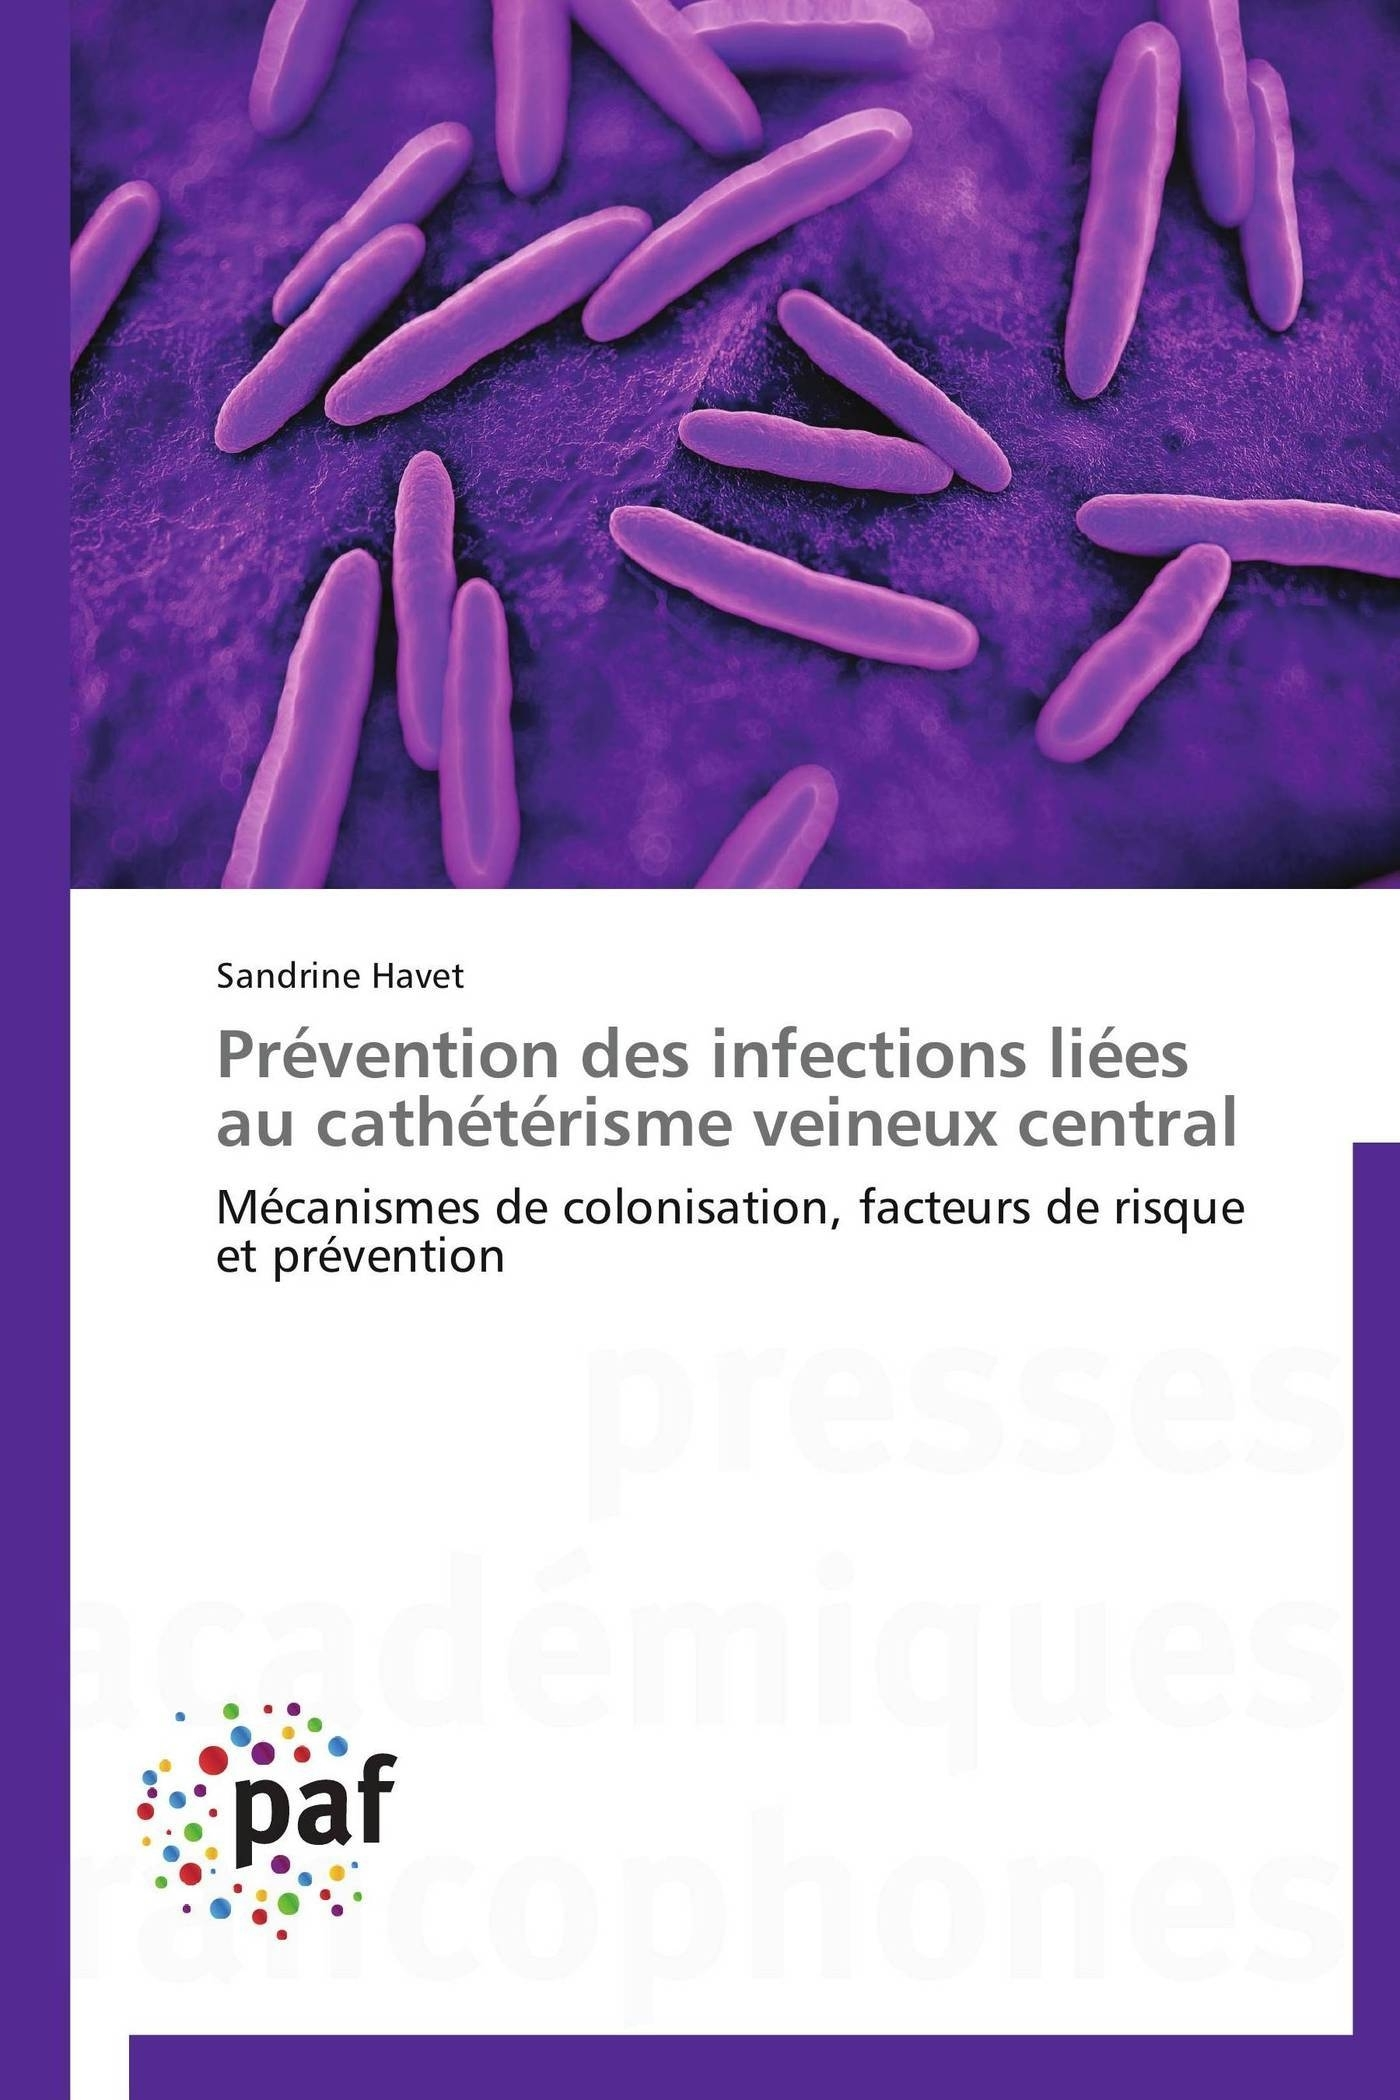 PREVENTION DES INFECTIONS LIEES AU CATHETERISME VEINEUX CENTRAL